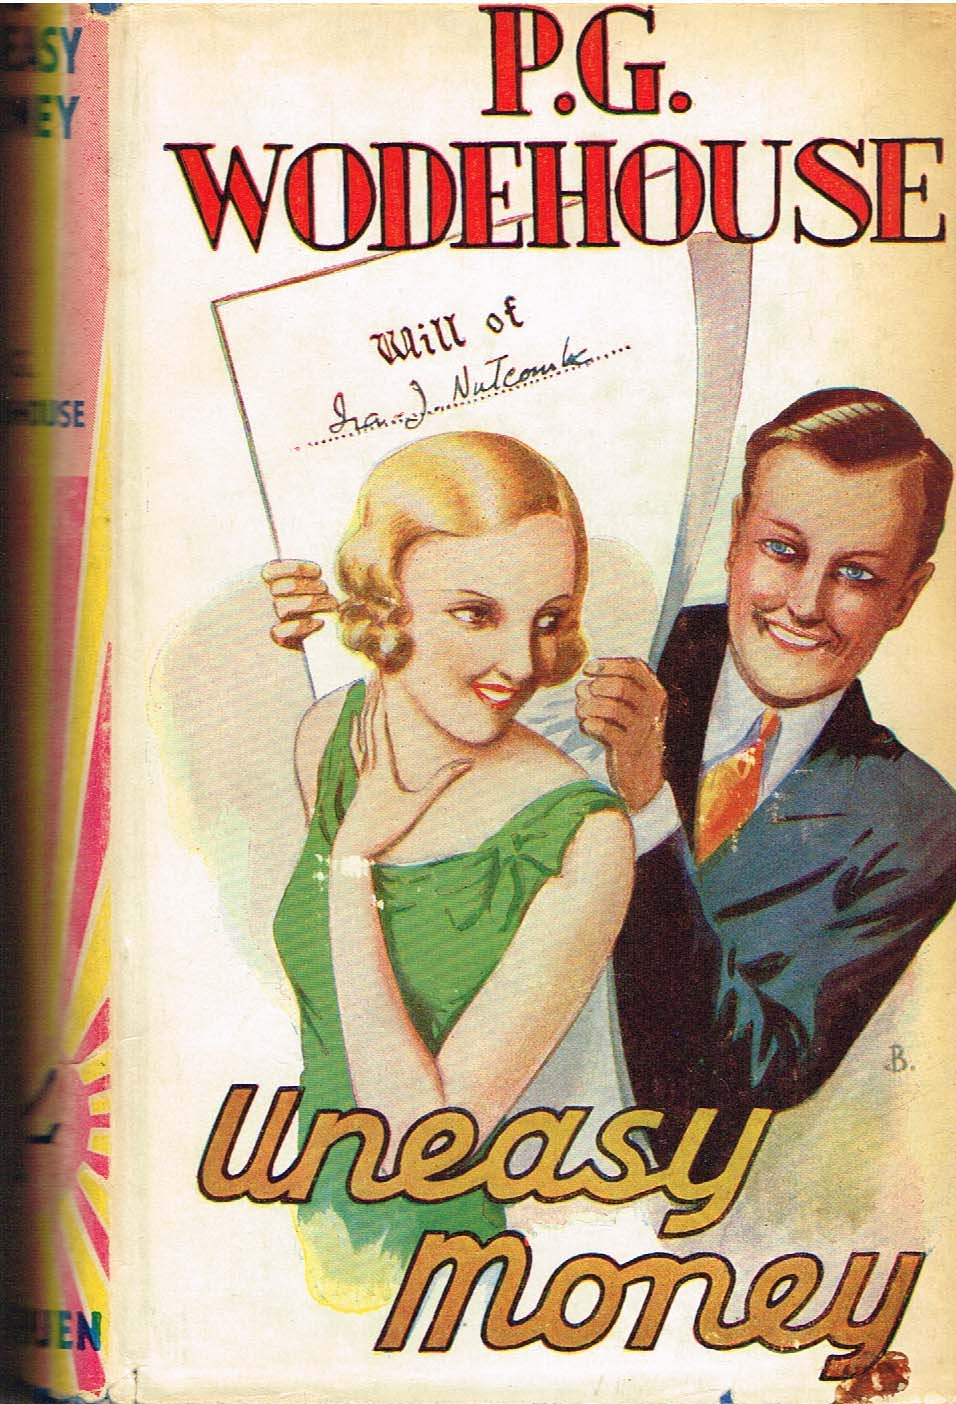 P G Wodehouse Uneasy money